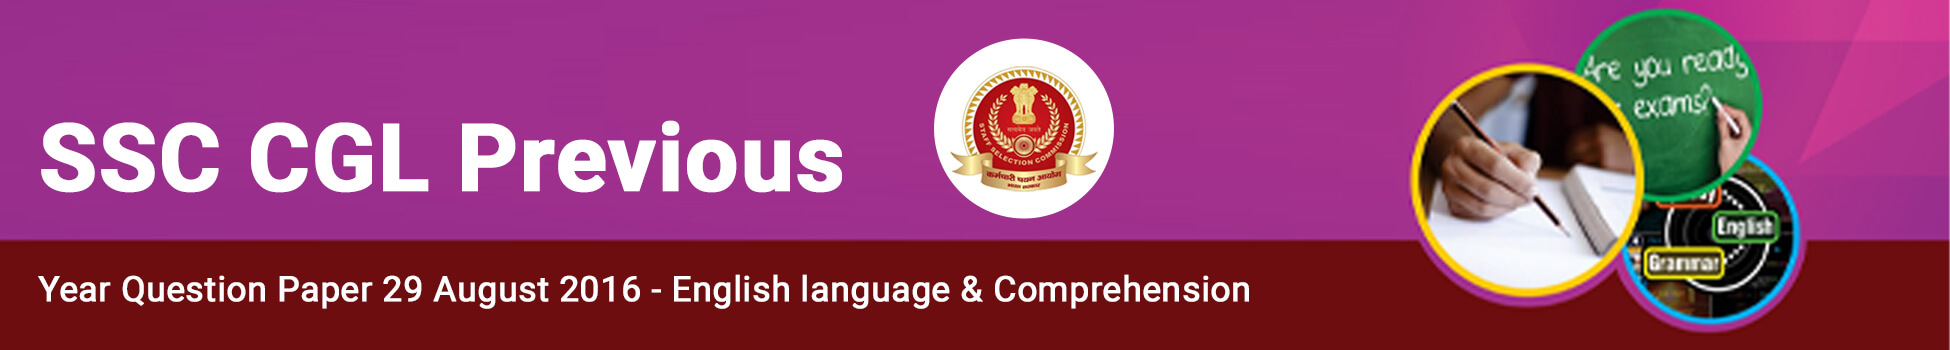 SSC CGL Previous Year Question Paper 29 August 2016 - English language & Comprehension